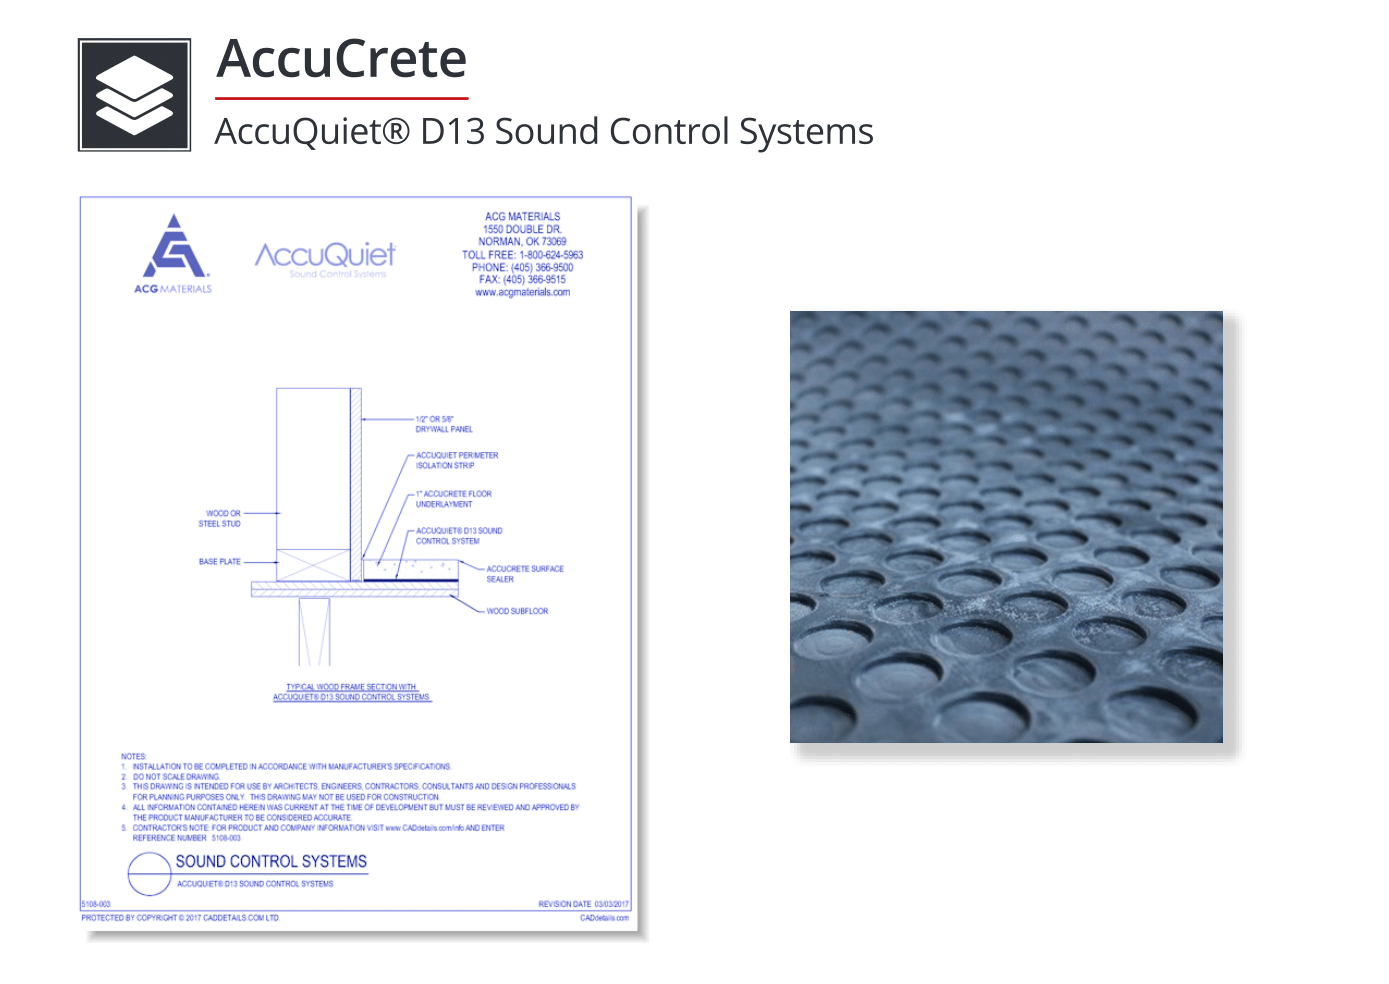 AccuCrete-AccuQuiet-Sound-Control-Systems-CADdrawing.png